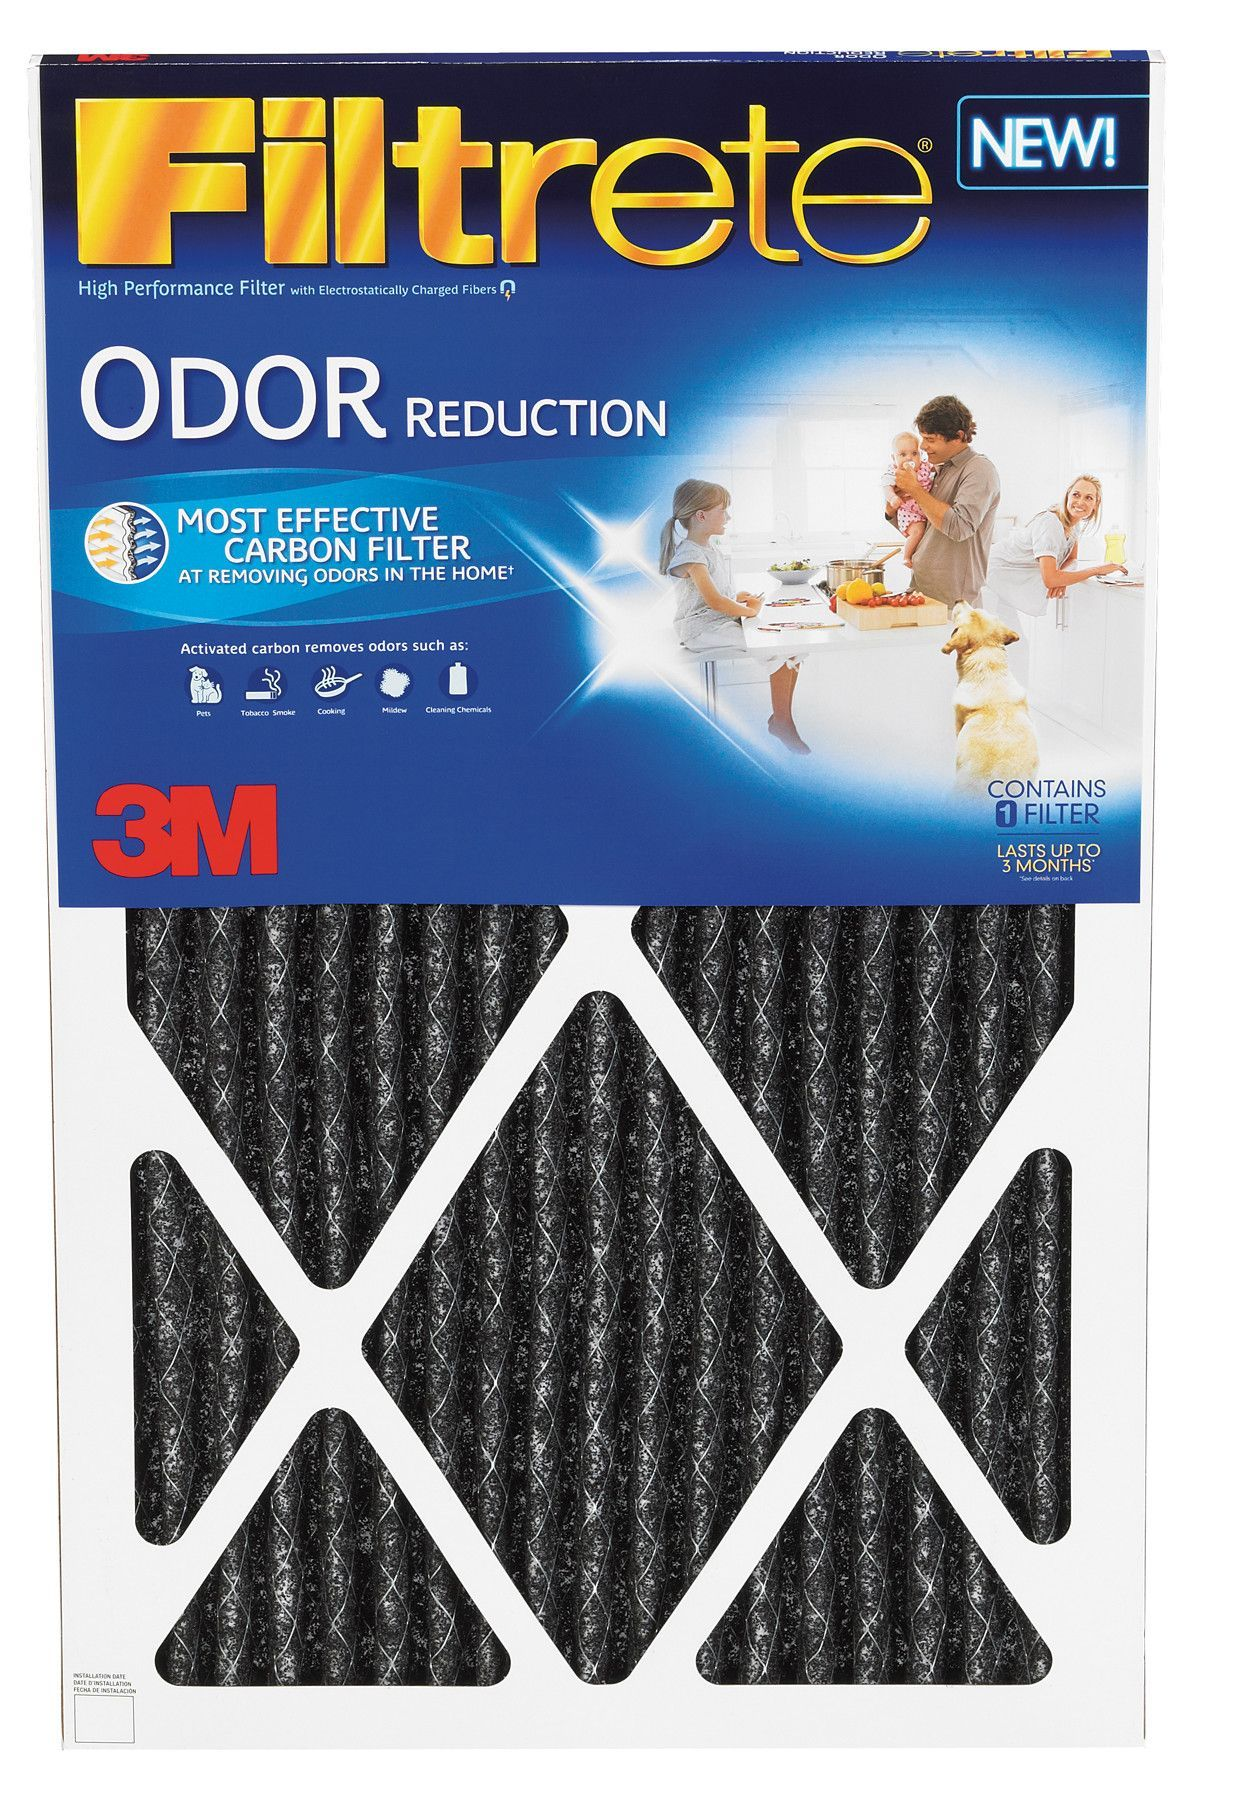 Home Odor Reduction Air Filter Furnace filters, Hvac